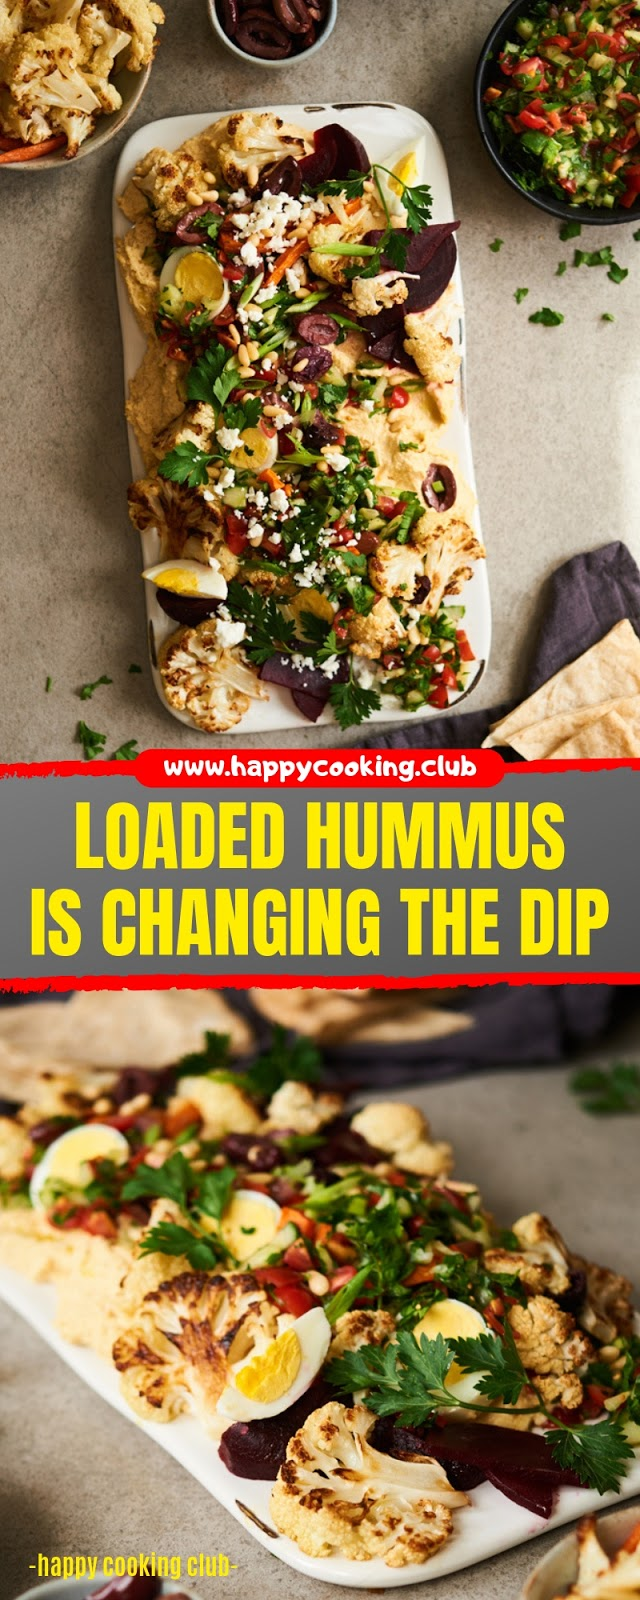 LOADED HUMMUS IS CHANGING THE DIP